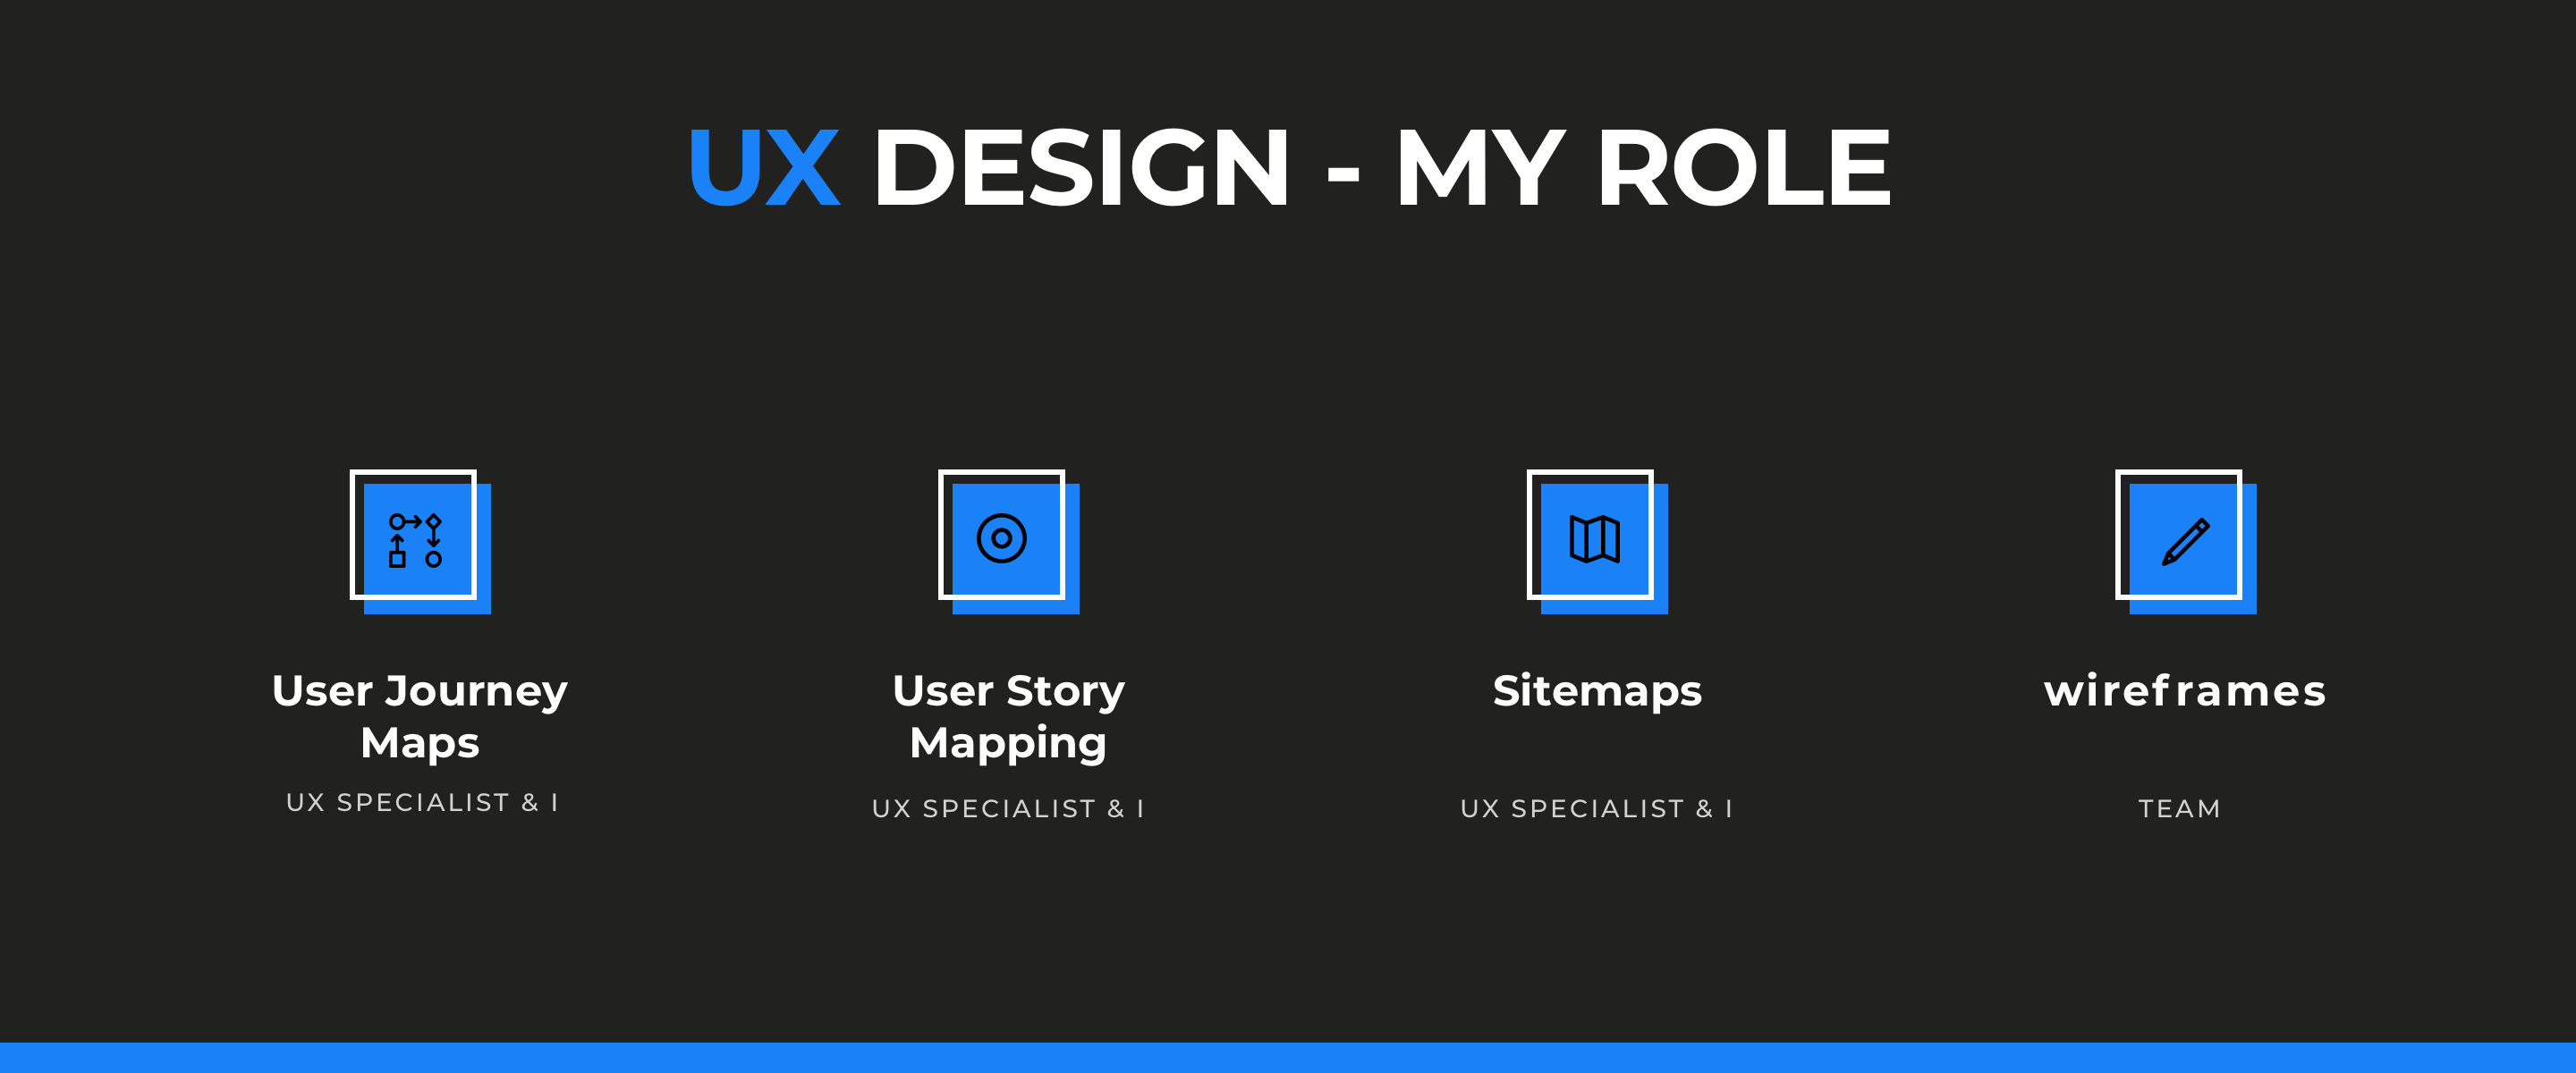 UX design Activities: user journey map, user story map, sitemap, wireframe